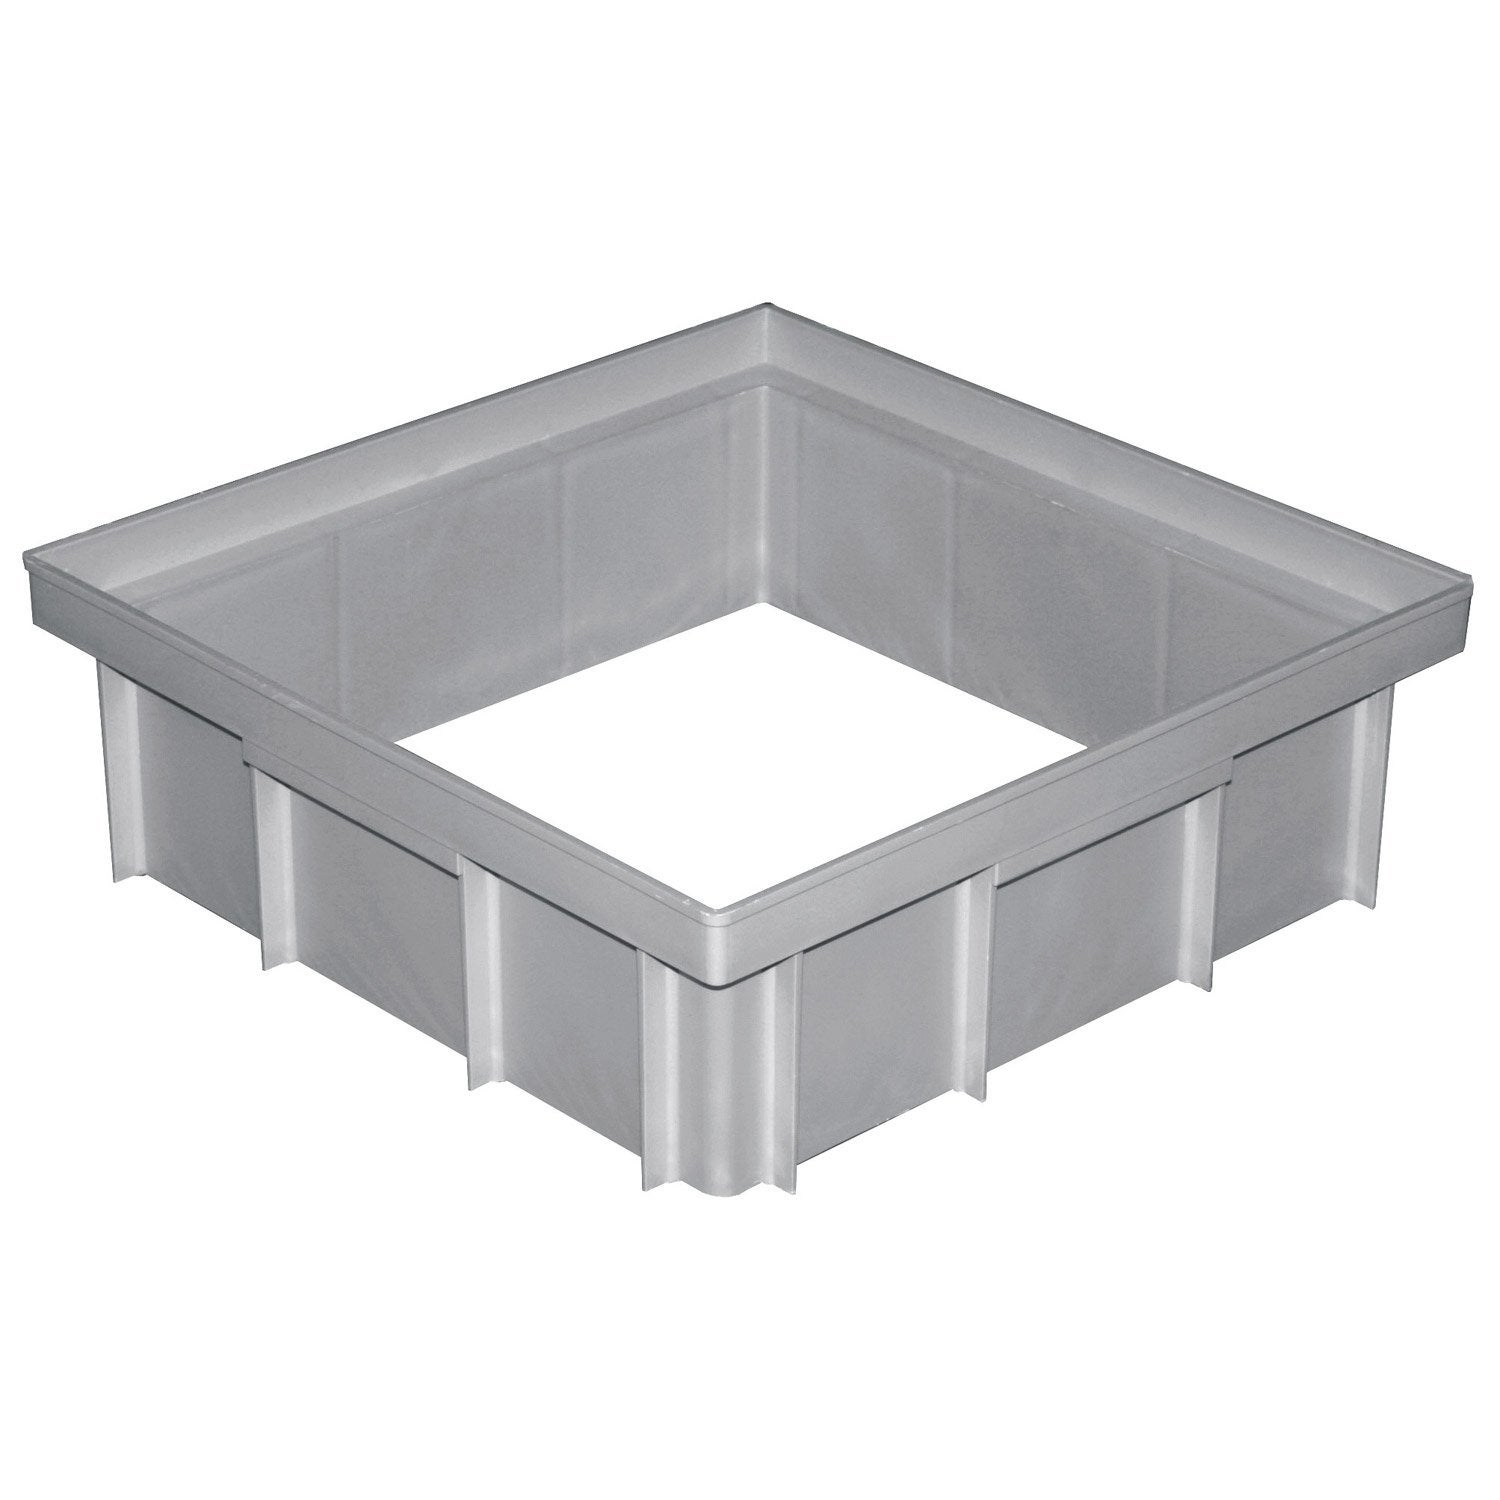 Rehausse polypropyl ne 30x30x10 cm leroy merlin - Table de cuisson leroy merlin ...